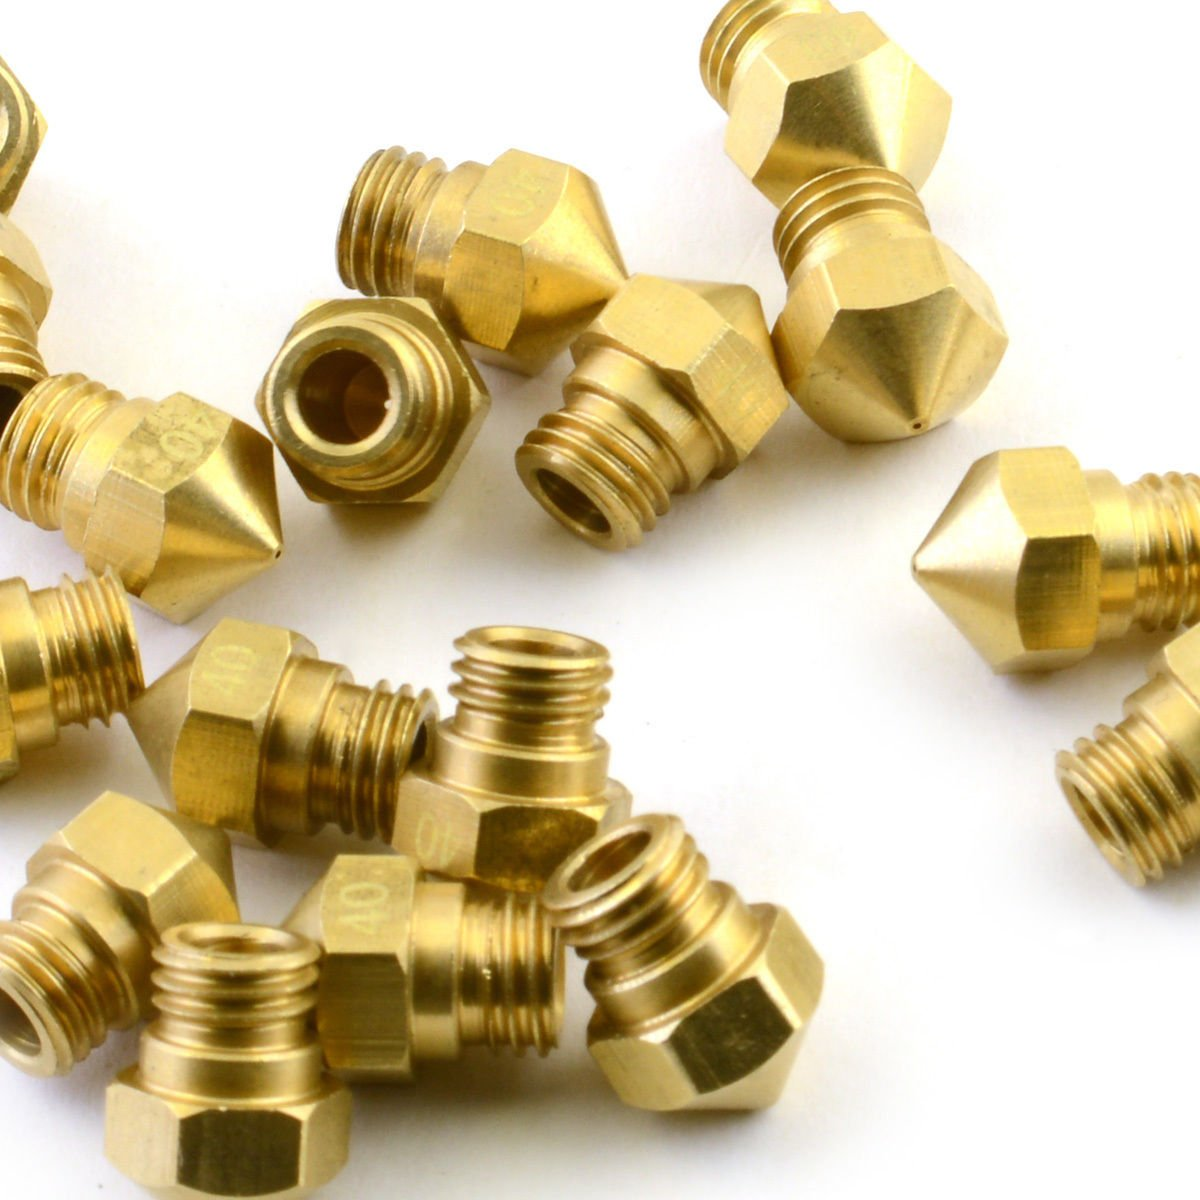 5Pcs Brass MK10 Extruder Nozzle 0.4mm for Wanhao CTC Flashforge 3D Printer